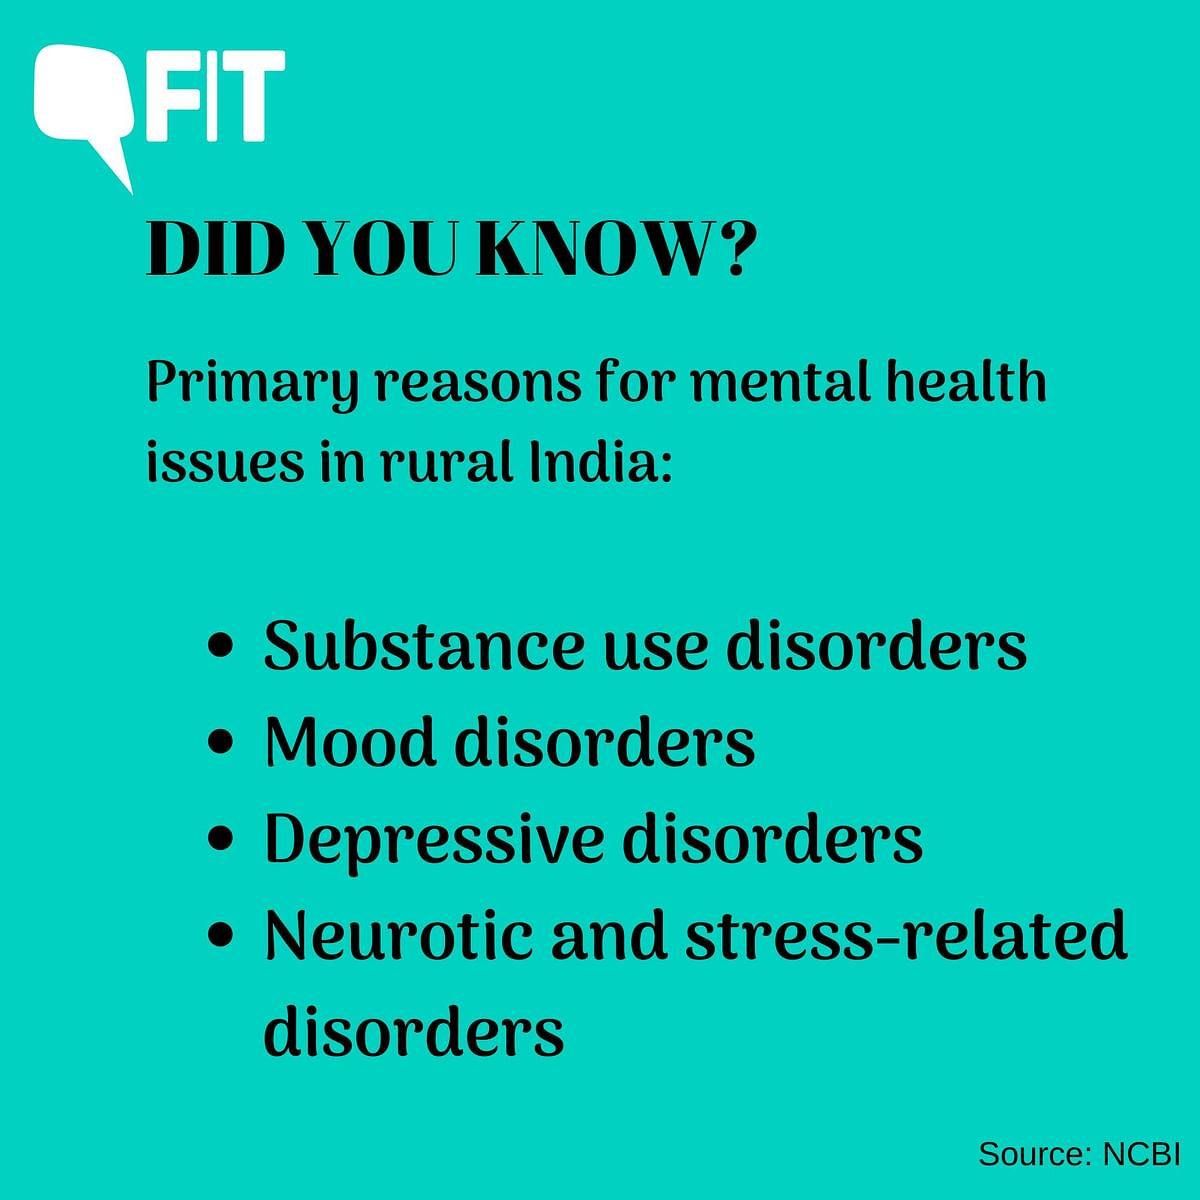 Mental health problems stem from a combination of biological, social, cultural and economic reasons.